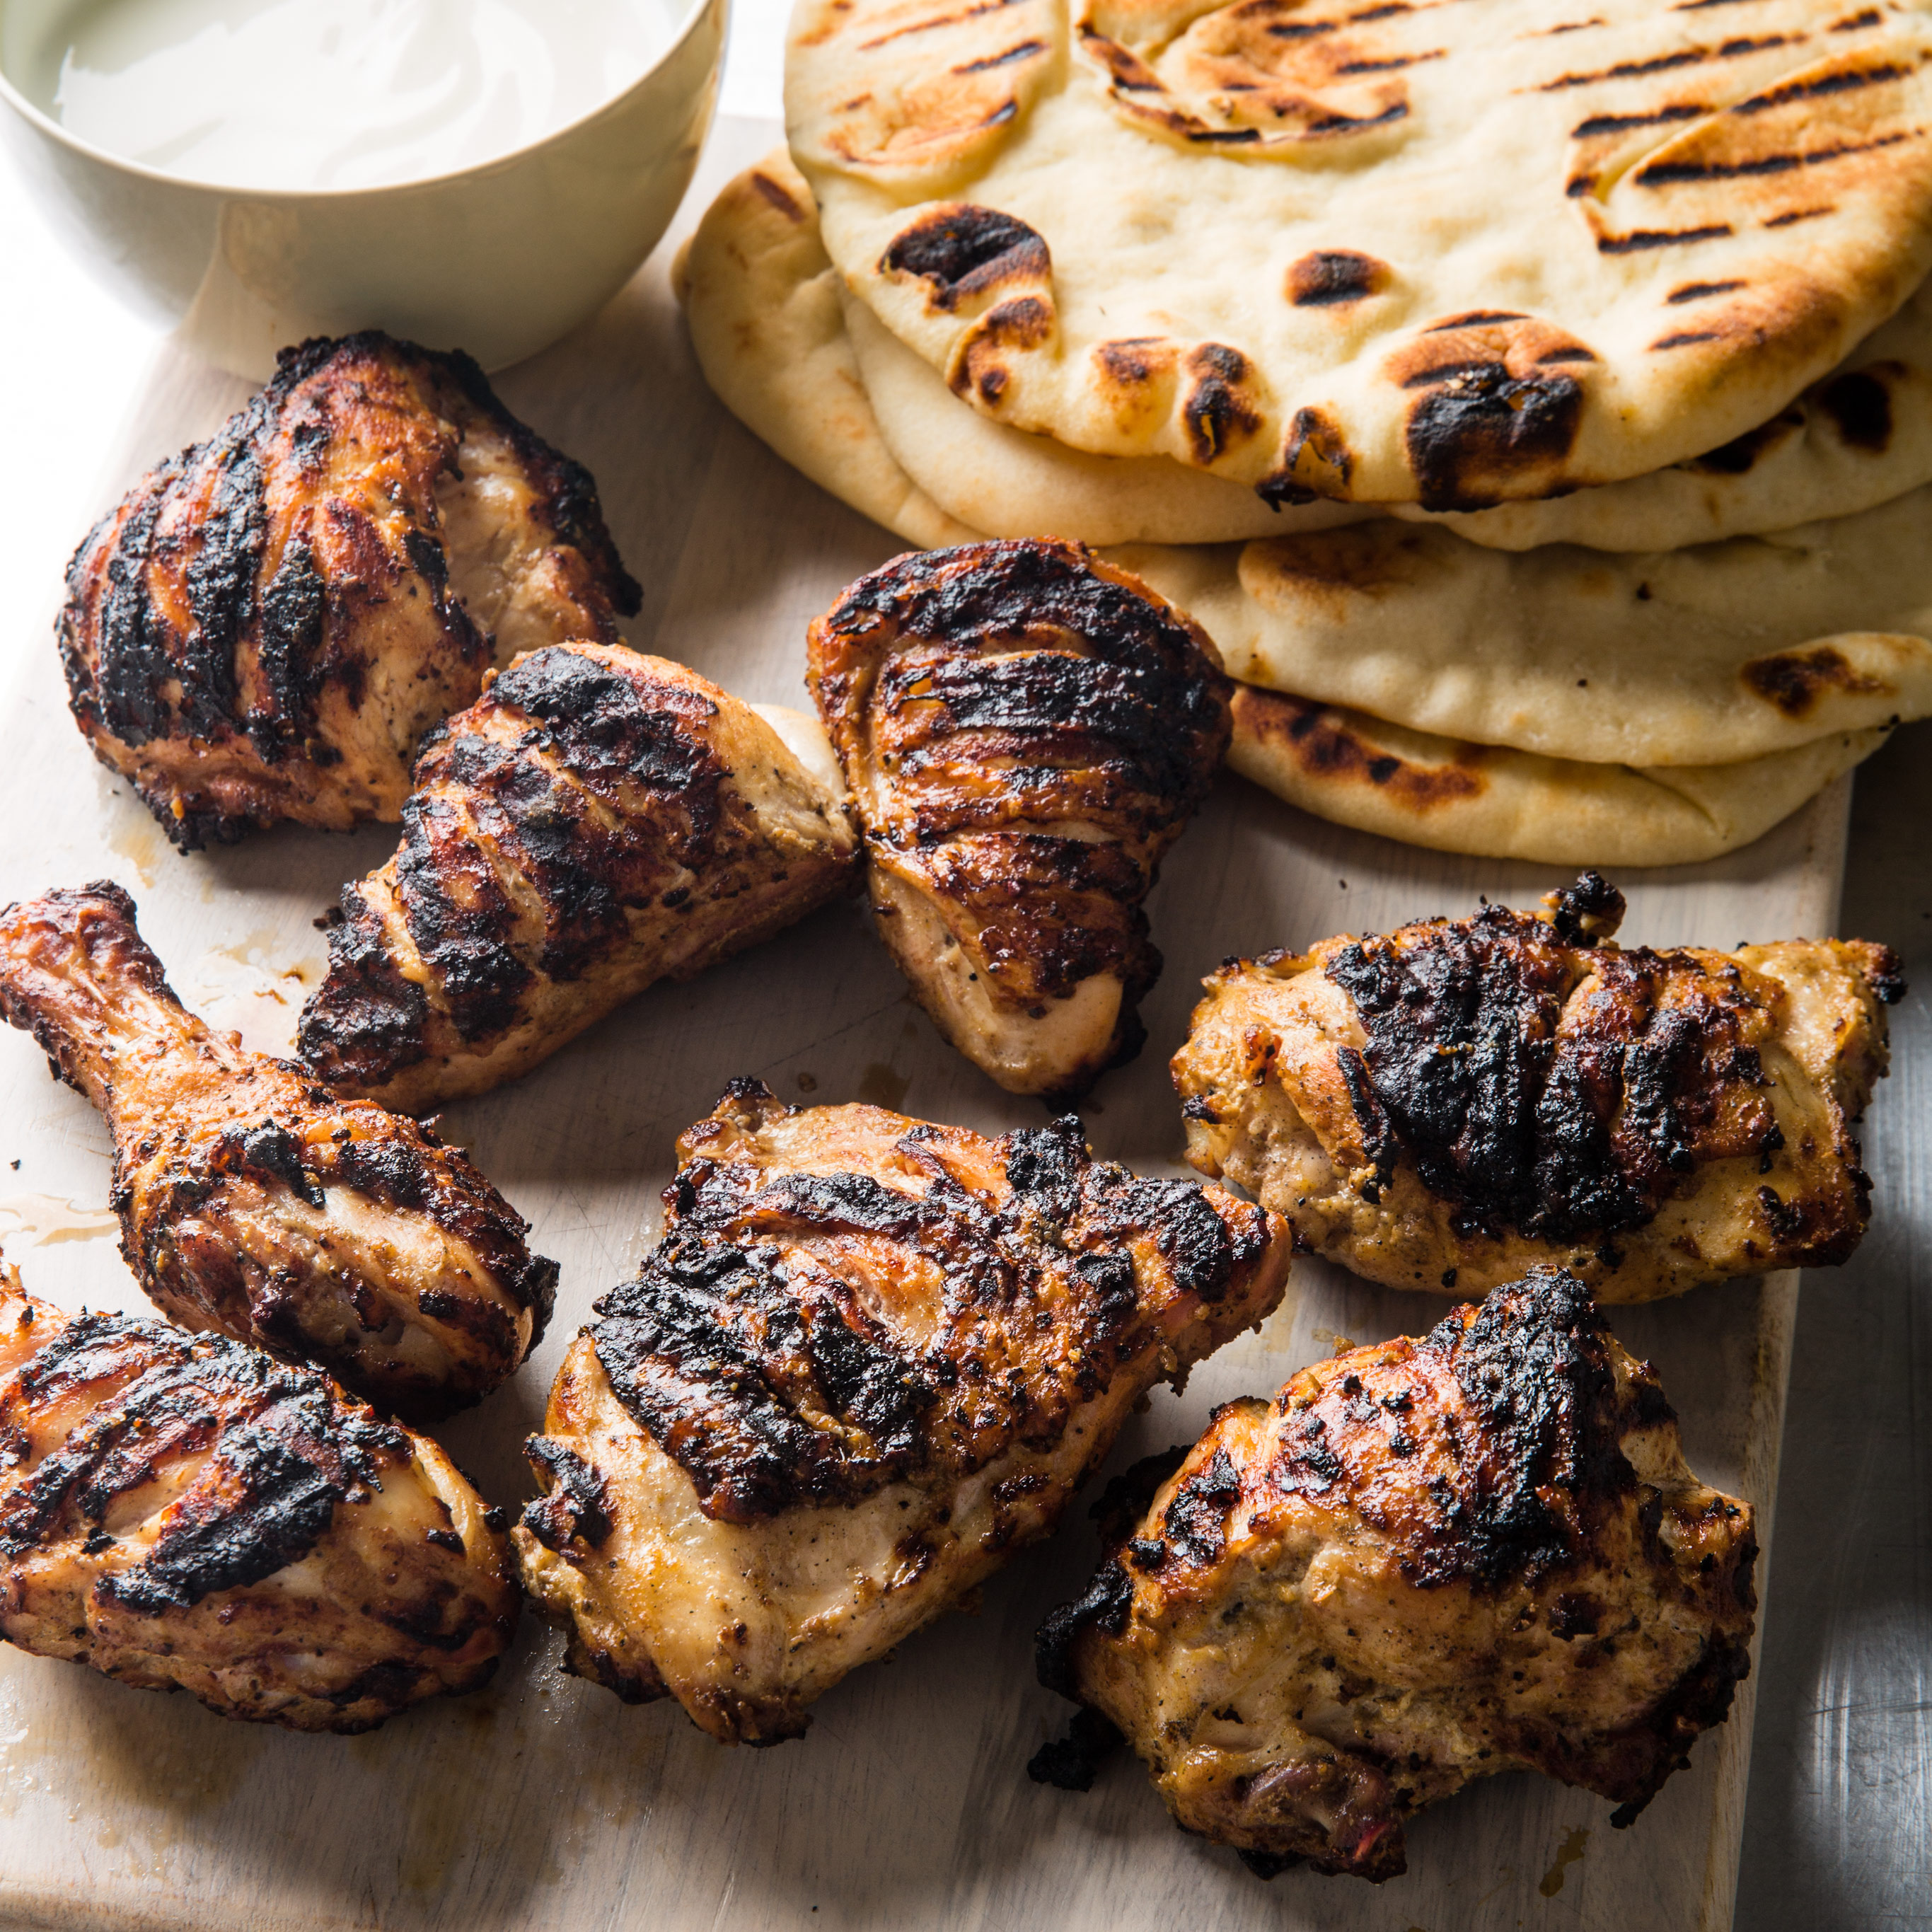 Tandoori-Style Chicken with Grilled Naan